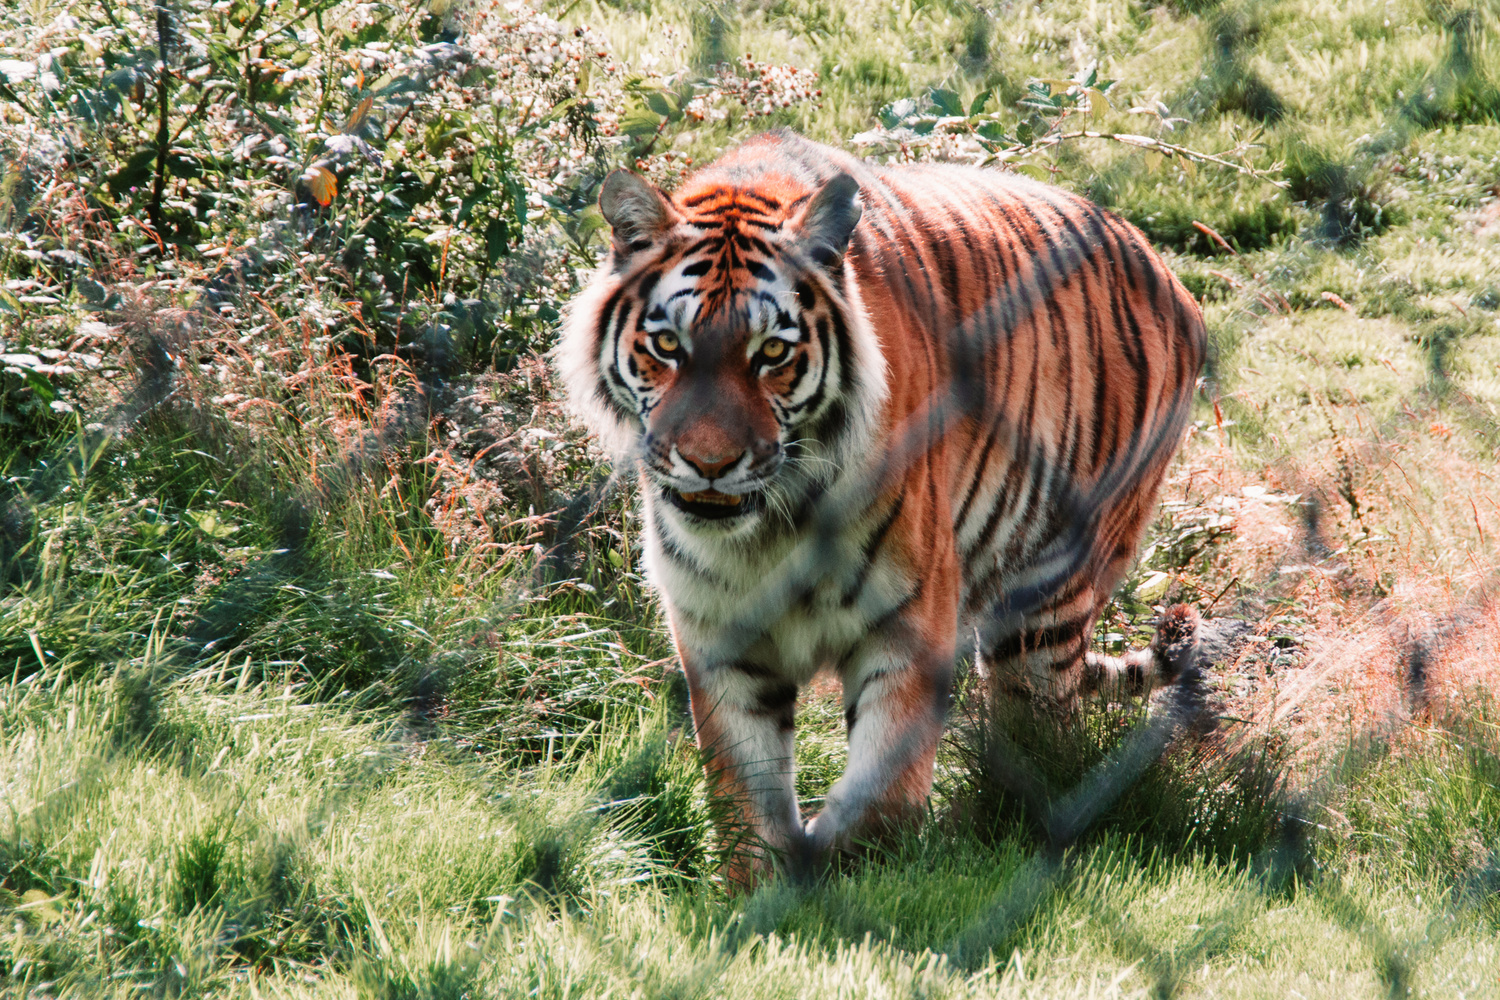 Tiger 3 by Phil Daley